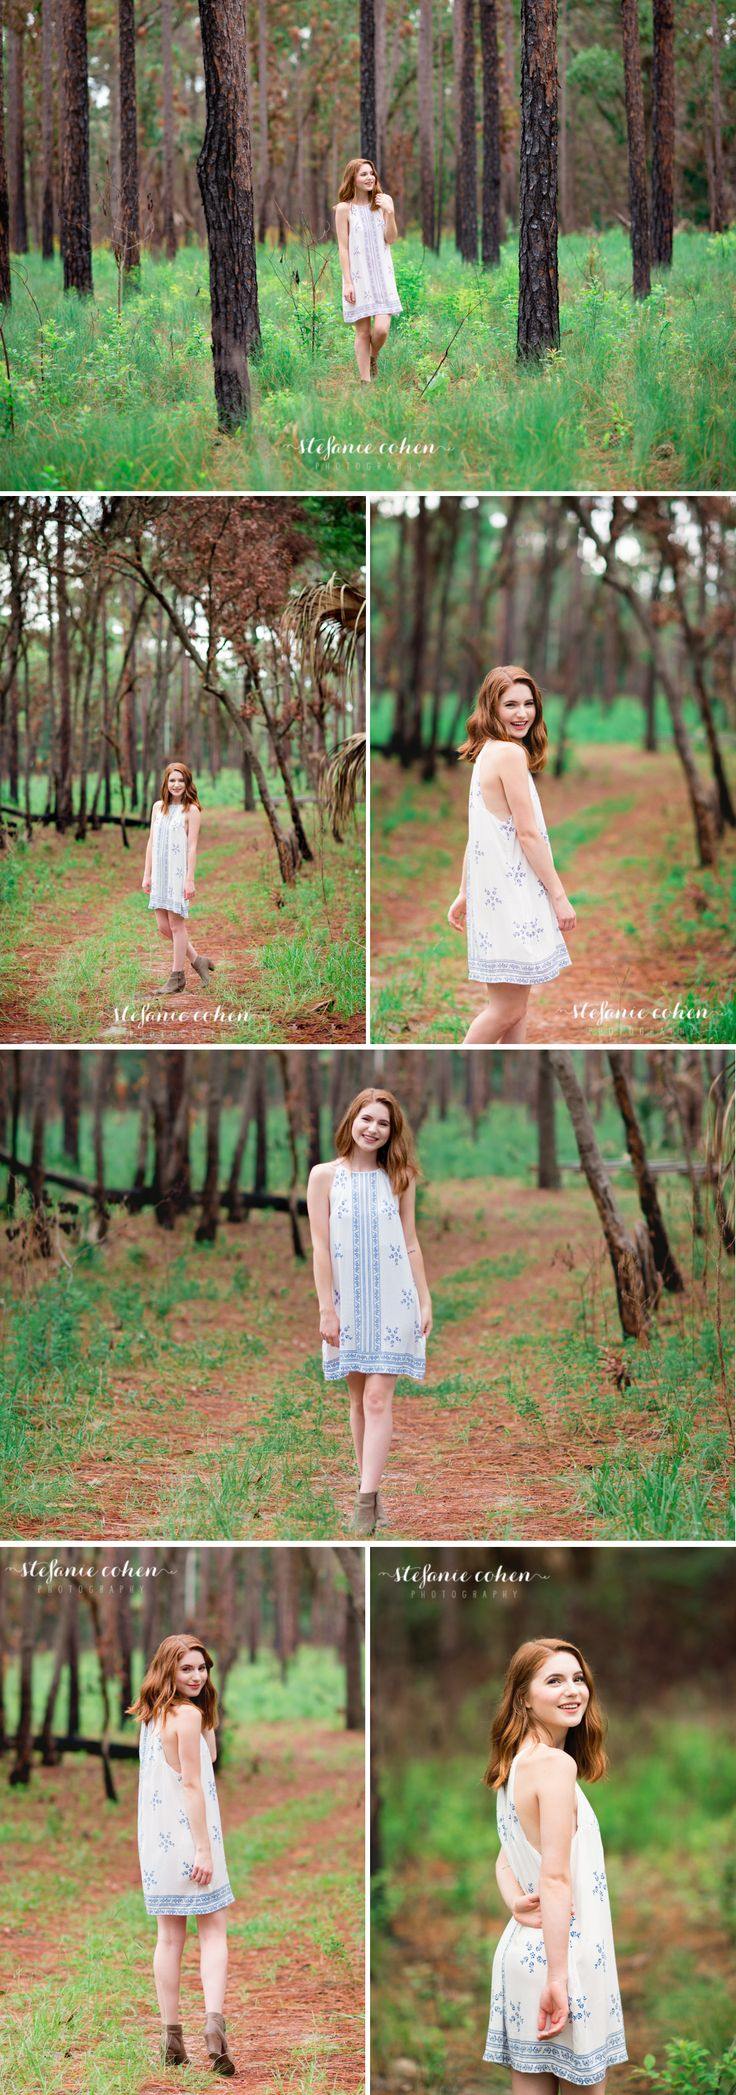 Senior Pictures | Senior Photography | High School Senior Photographers in Orlando and Winter Park | High School Senior Picture Ideas for Girls | Poses for Girls | Nature Inspired Photo Shoot | Wekiva Springs State Park | Senior Picture Poses | Stefanie Cohen Photography